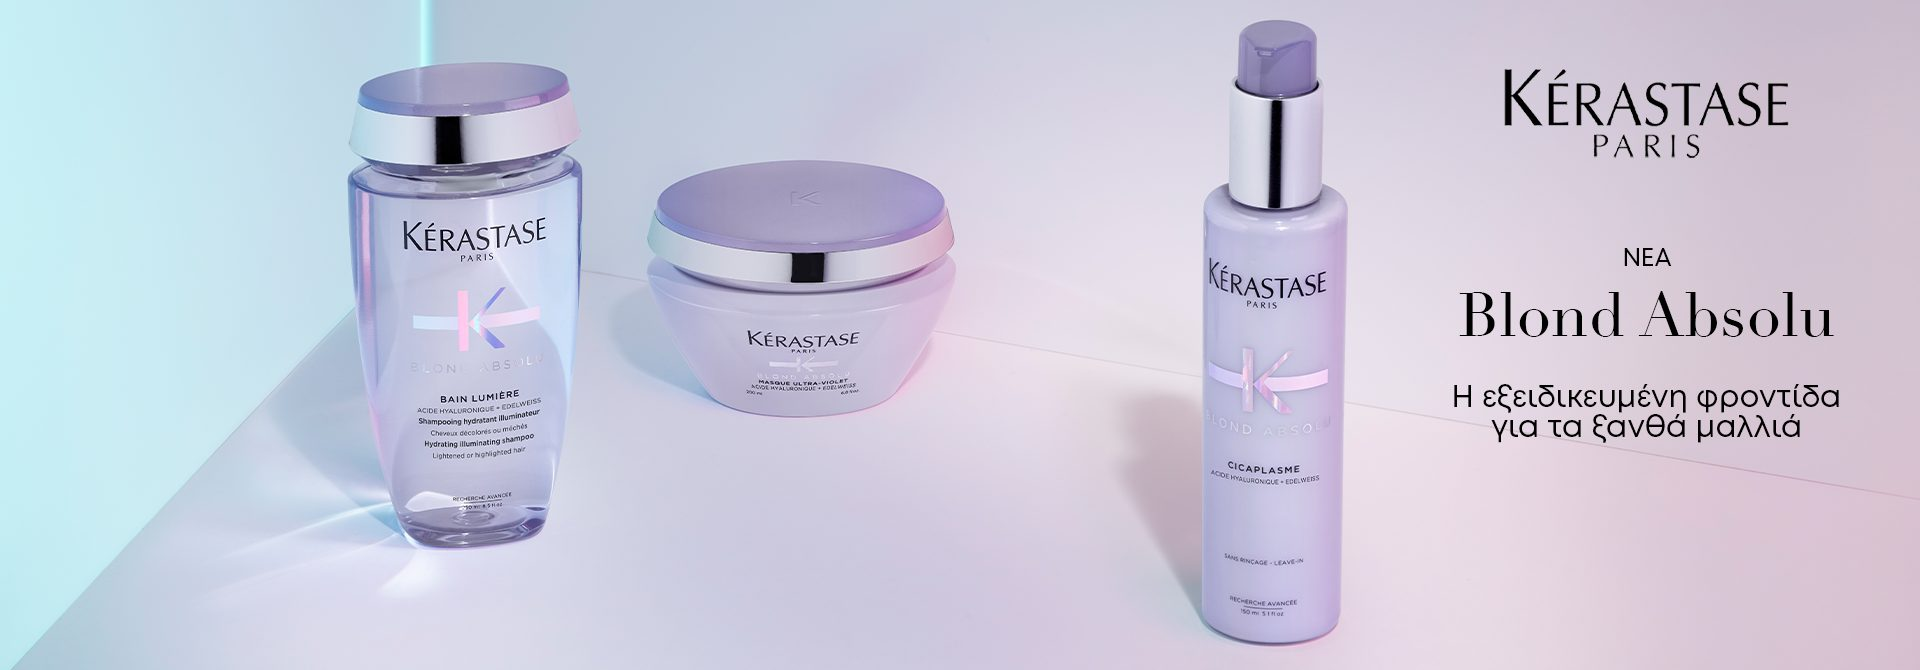 Kerastase - Blond - Absolu - Ξανθά Μαλλιά - Περιποίηση - Le Tif Beauty and Hair Shop